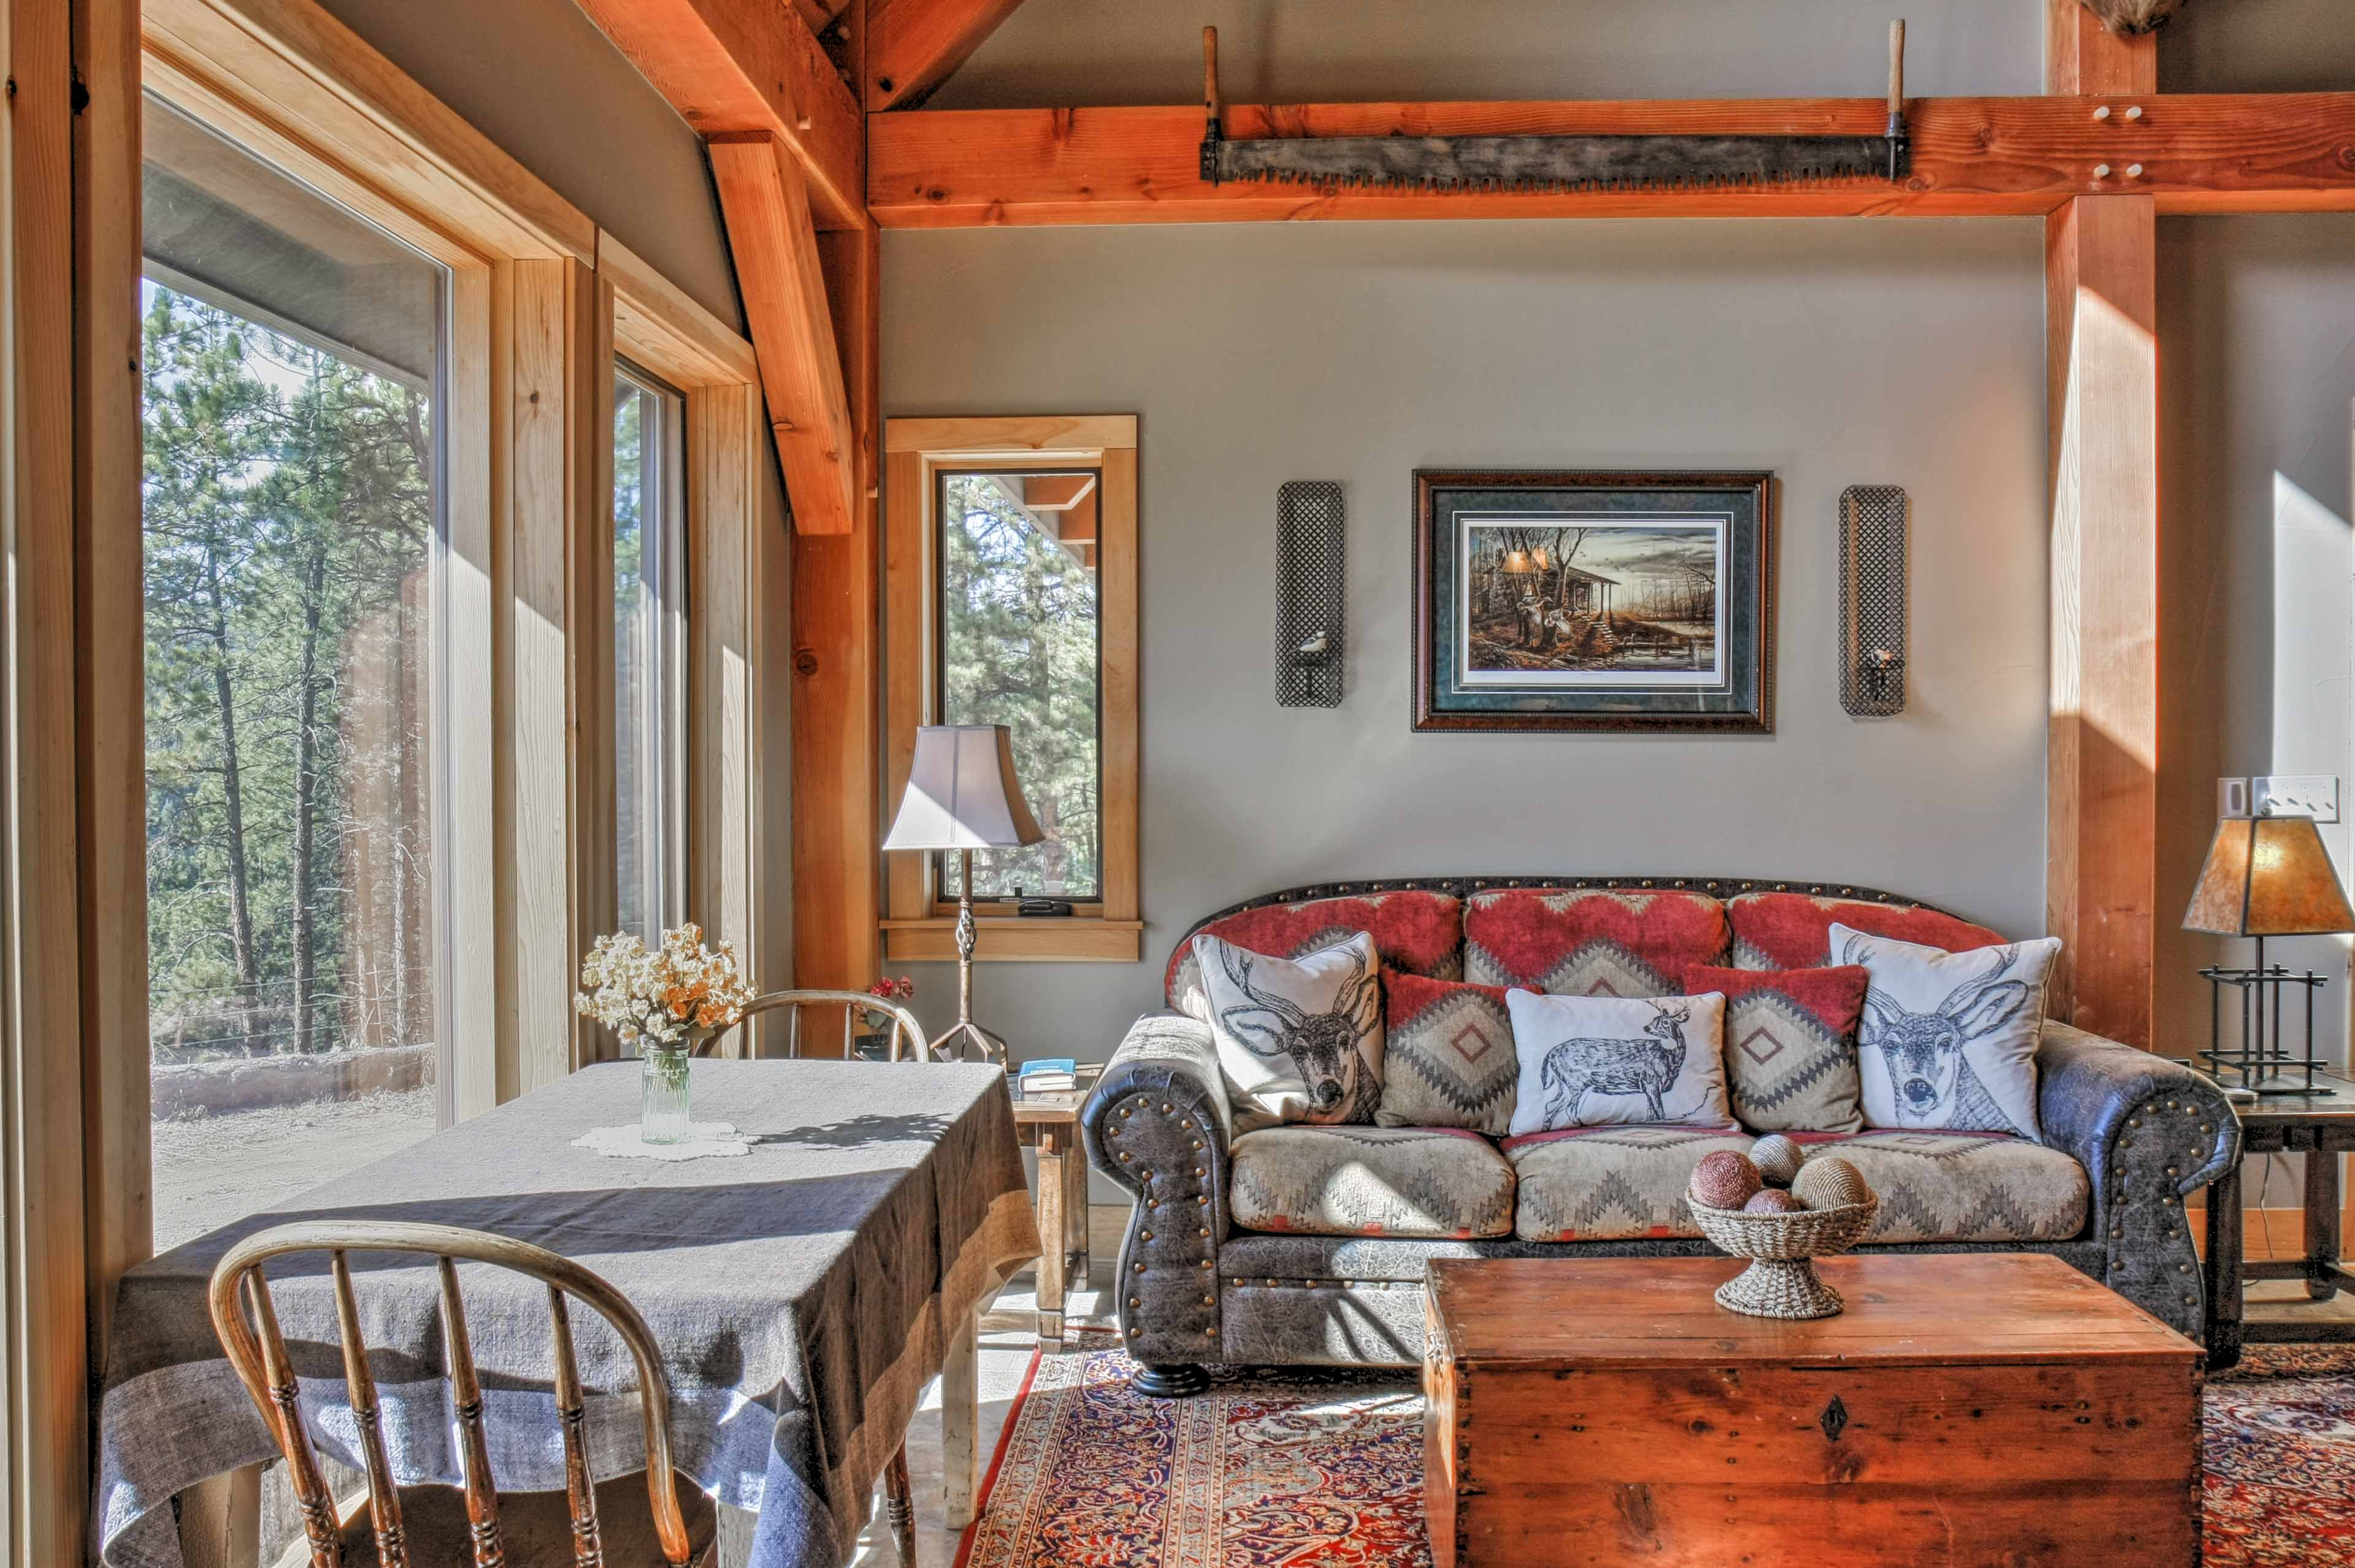 Natural light fills the space and pulls the great outdoors inside.